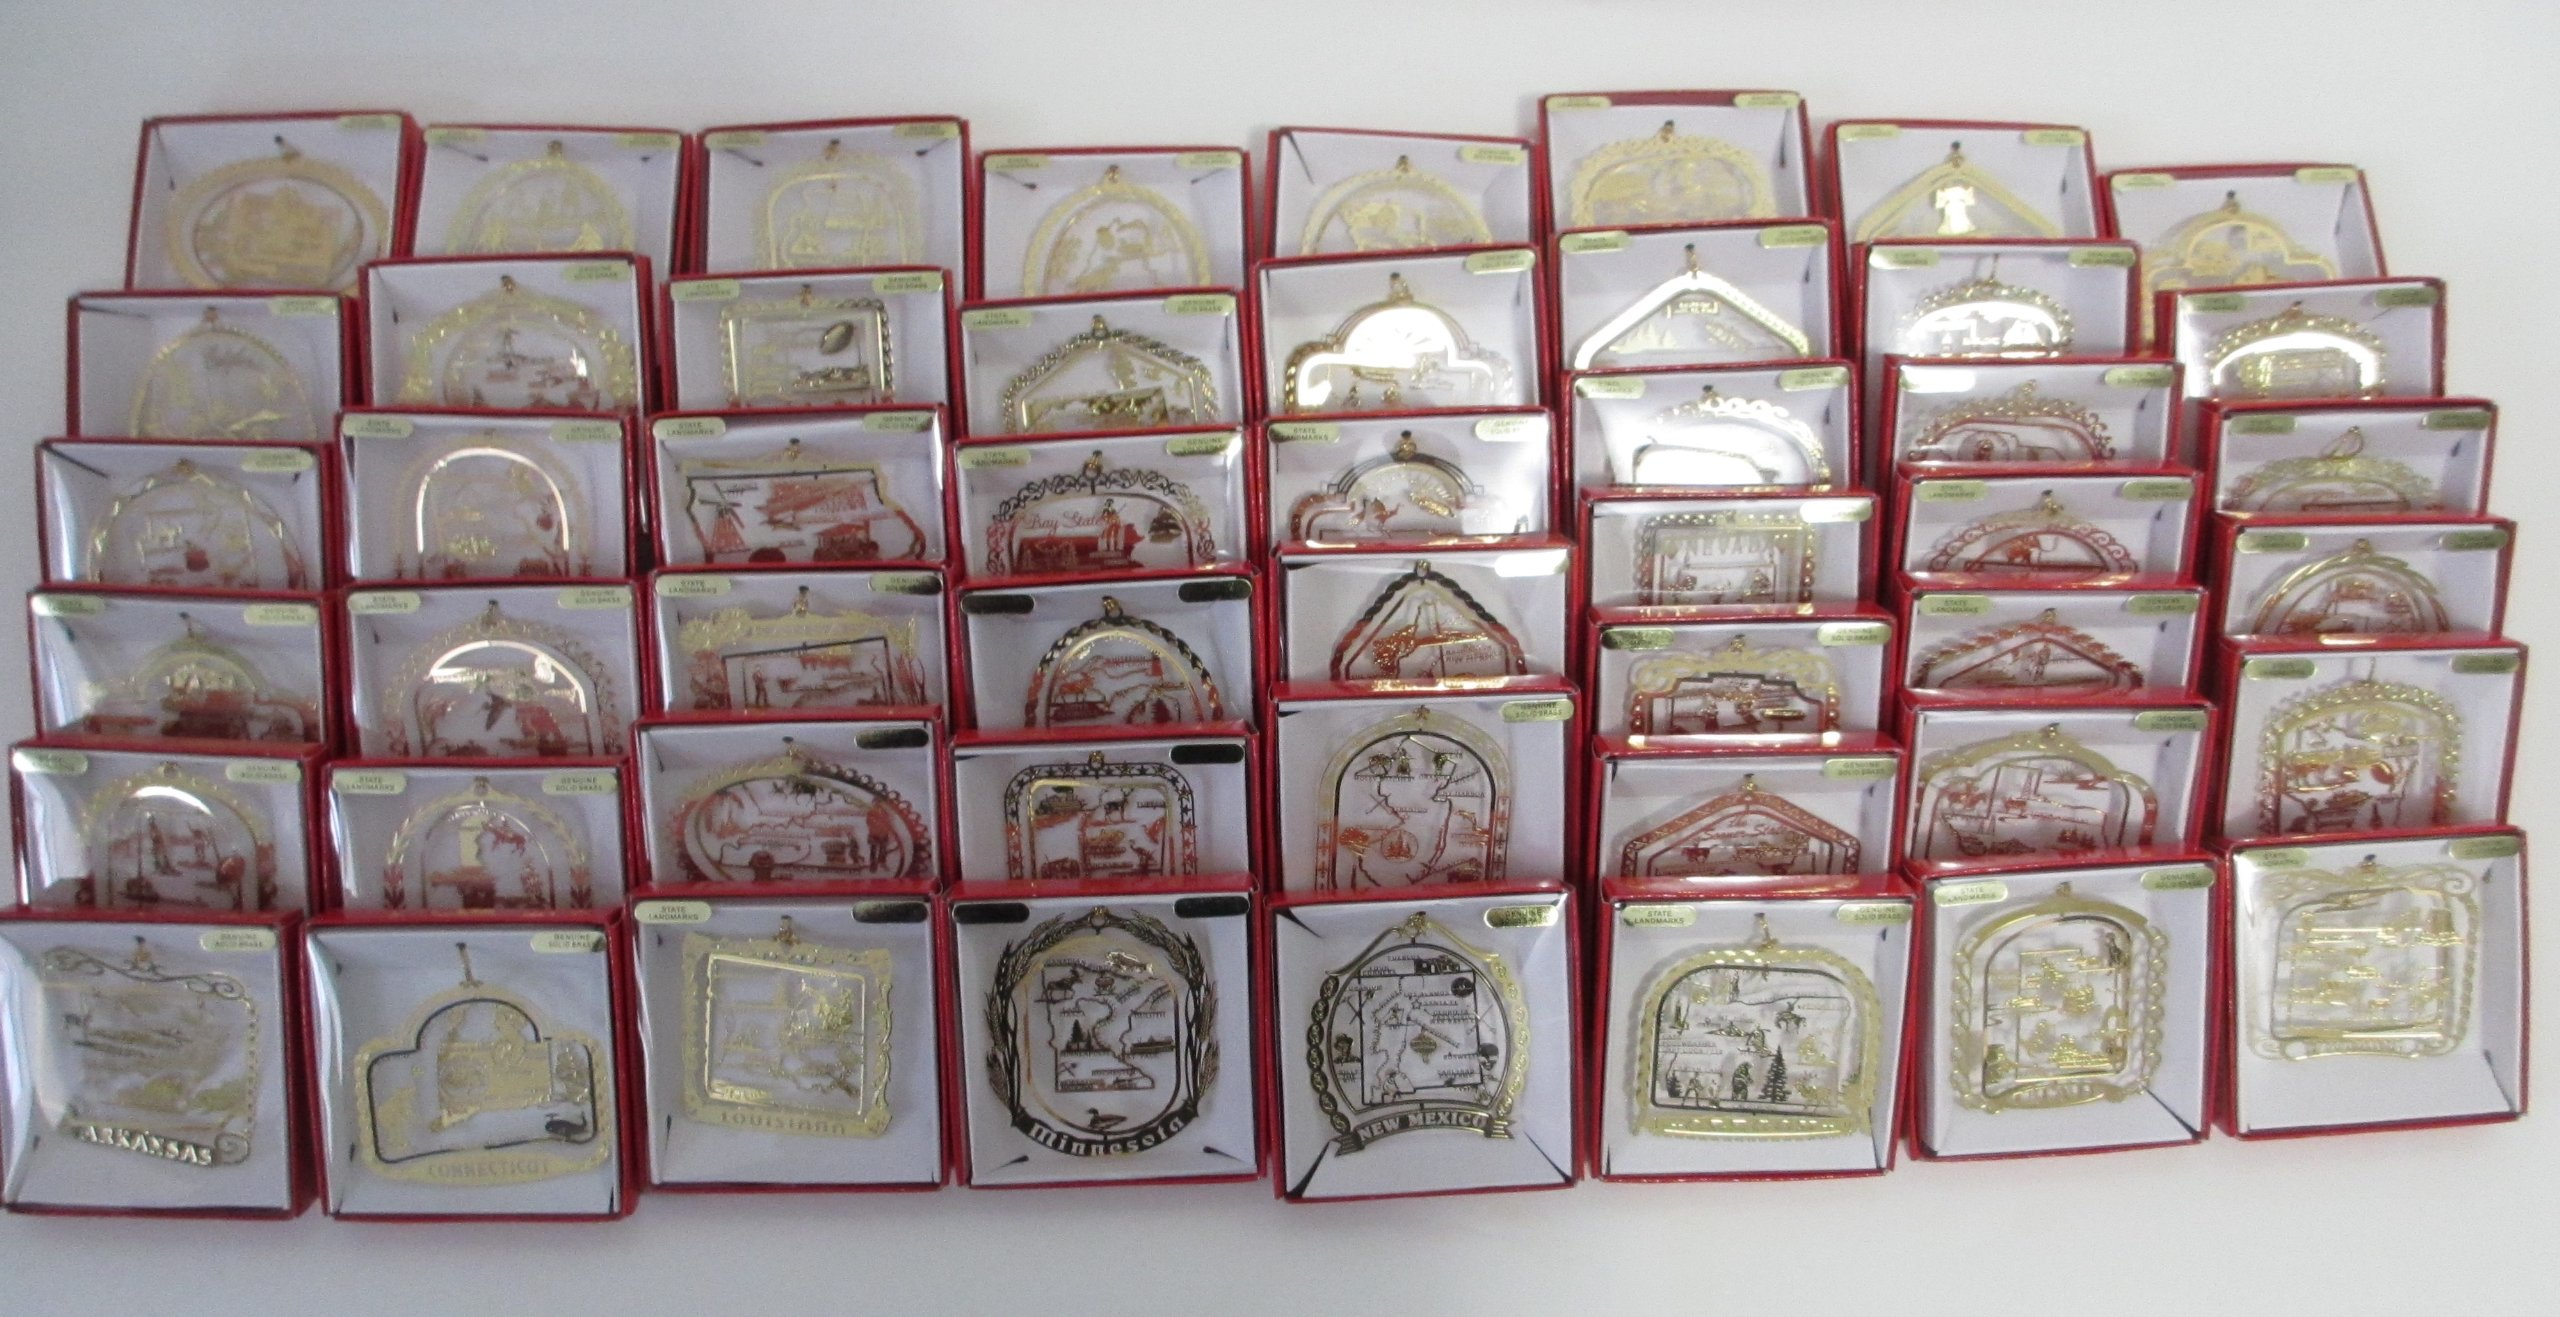 All 50 States Brass Christmas Ornaments USA America by Nations Treasures